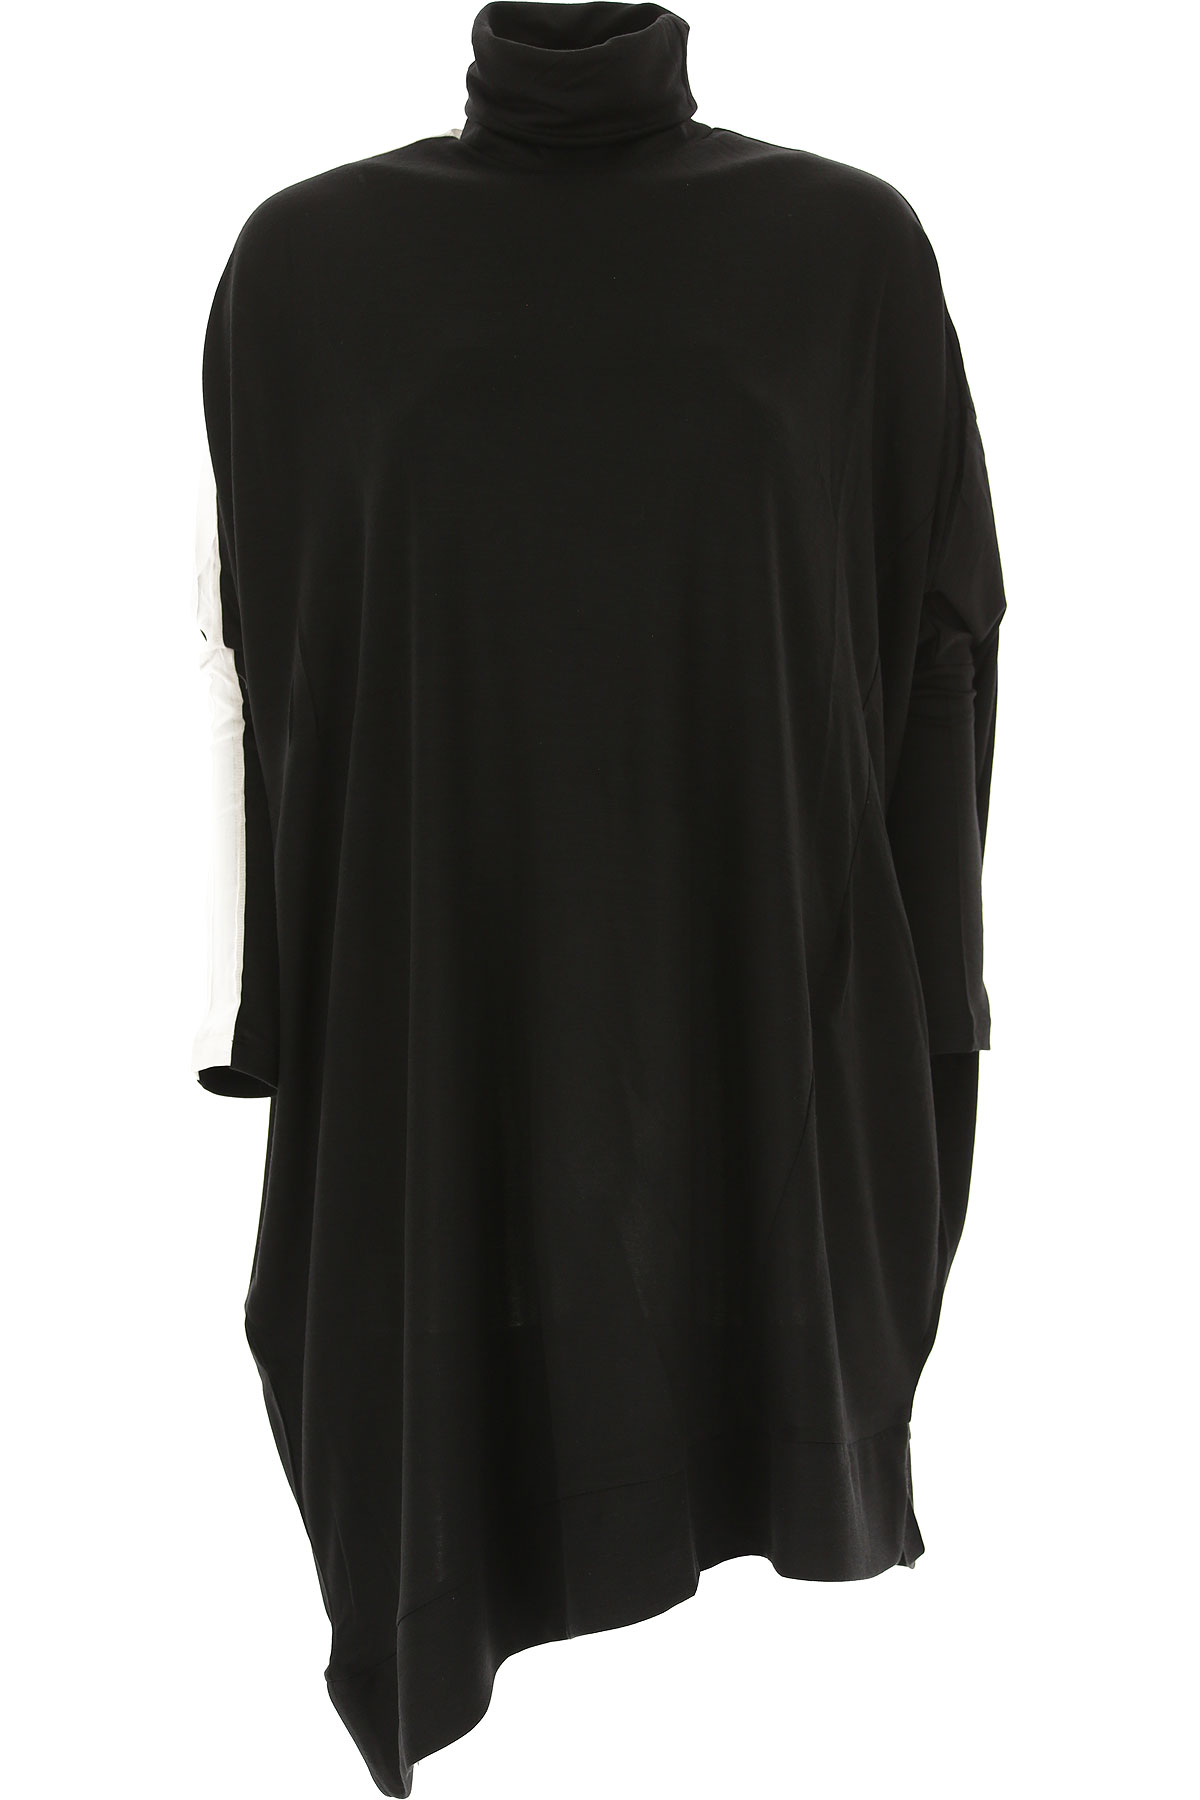 Image of Liviana Conti Dress for Women, Evening Cocktail Party, Black, tencel, 2017, 2 4 6